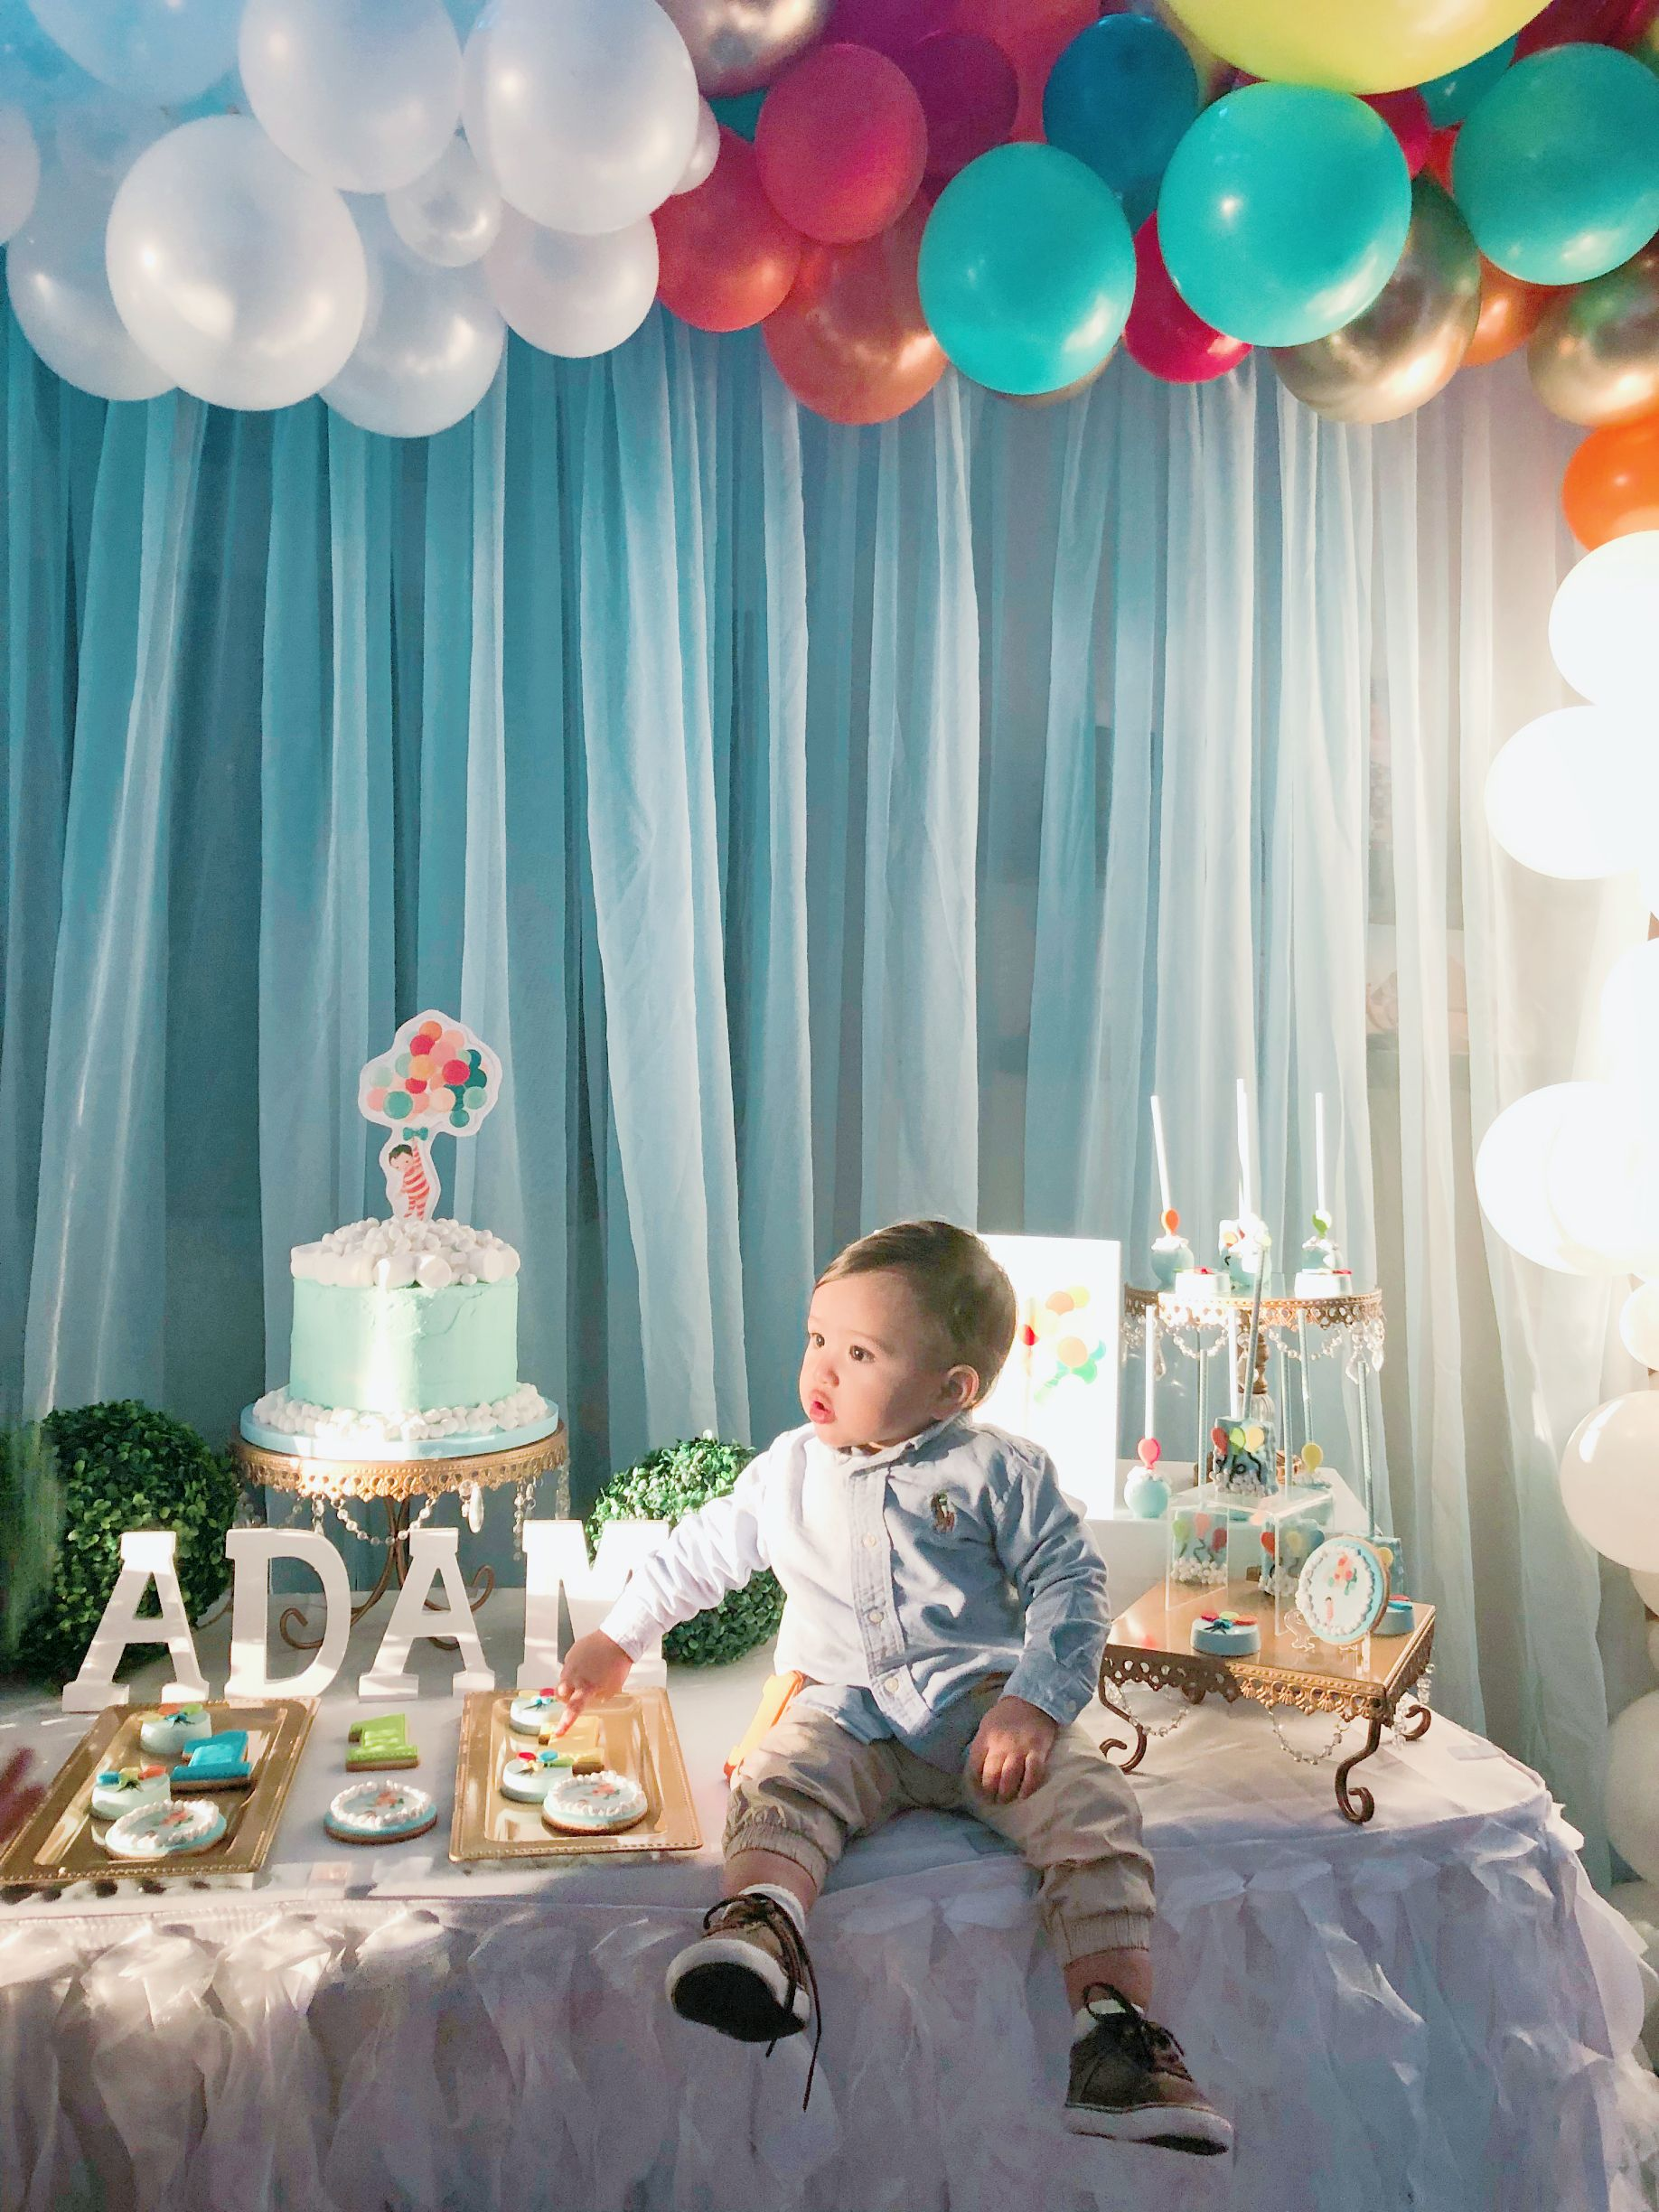 The Wonderful Things You Will Be 1st Birthday Party Boy Baby Birthday Themes Boy Birthday Parties 1st Birthday Parties